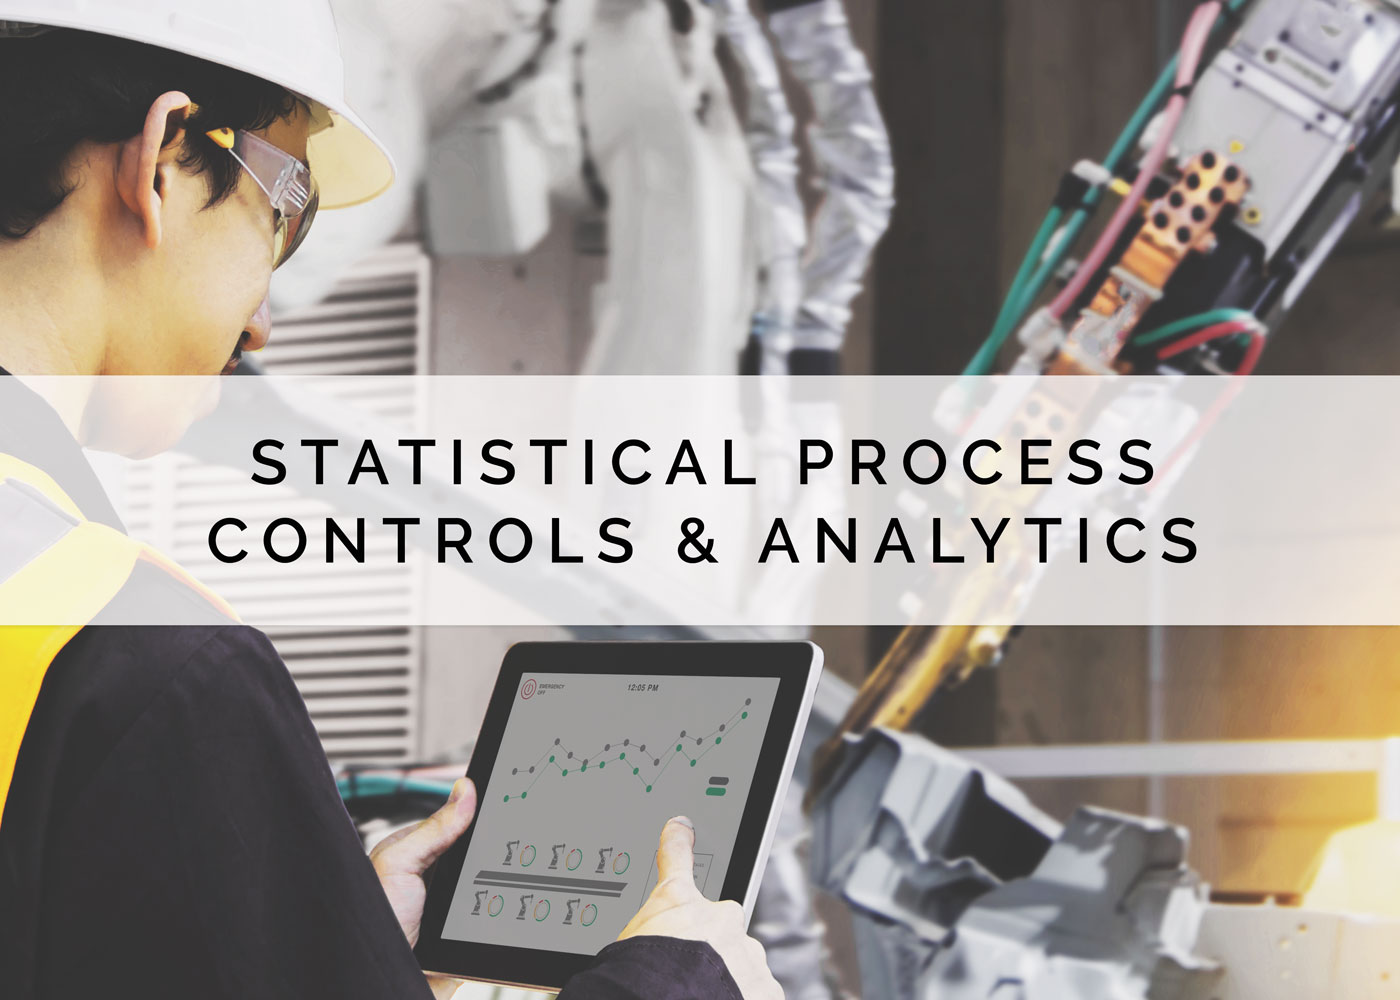 Statistical-Process-Controls-Analytics-[Mobile]